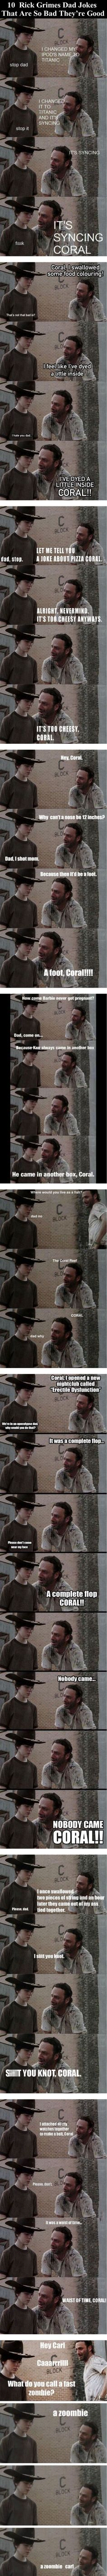 10 Rick Grimes Dad Jokes That Are So Bad They're Good funny memes jokes story meme lol funny quote funny quotes funny sayings joke humor the walking dead ricks dad jokes